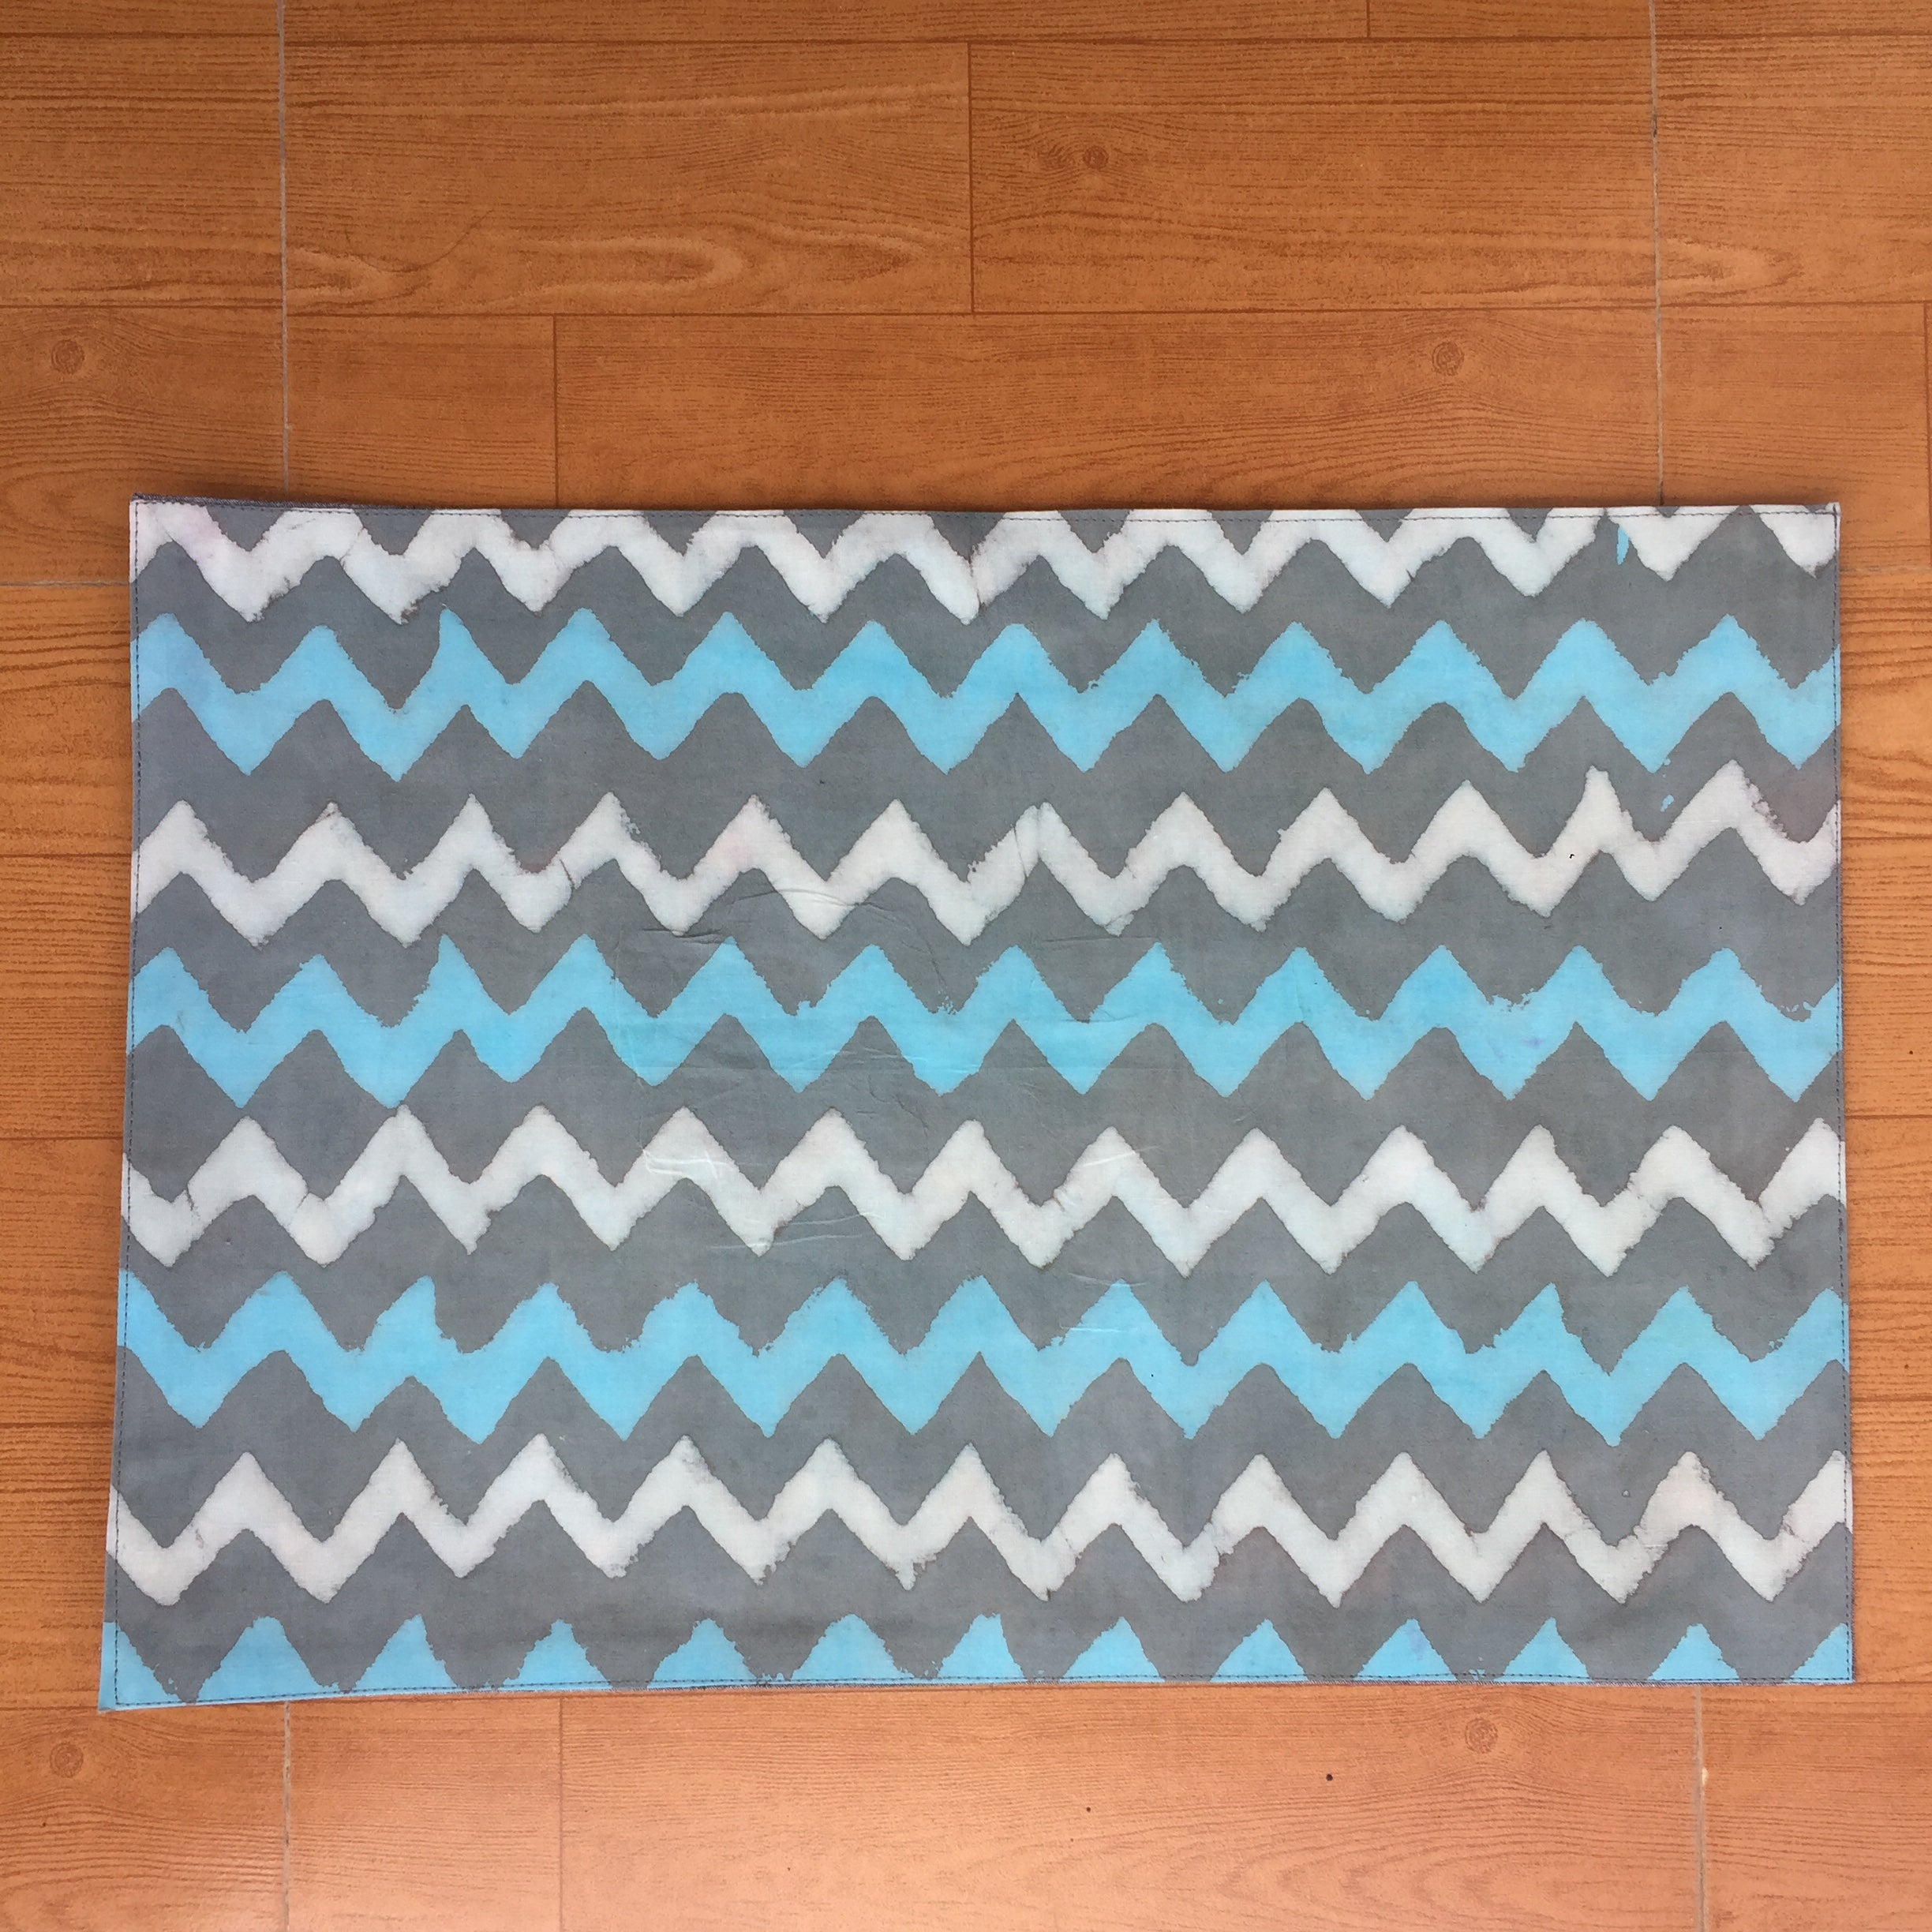 Blue White and Grey Zigzag Cotton Mat